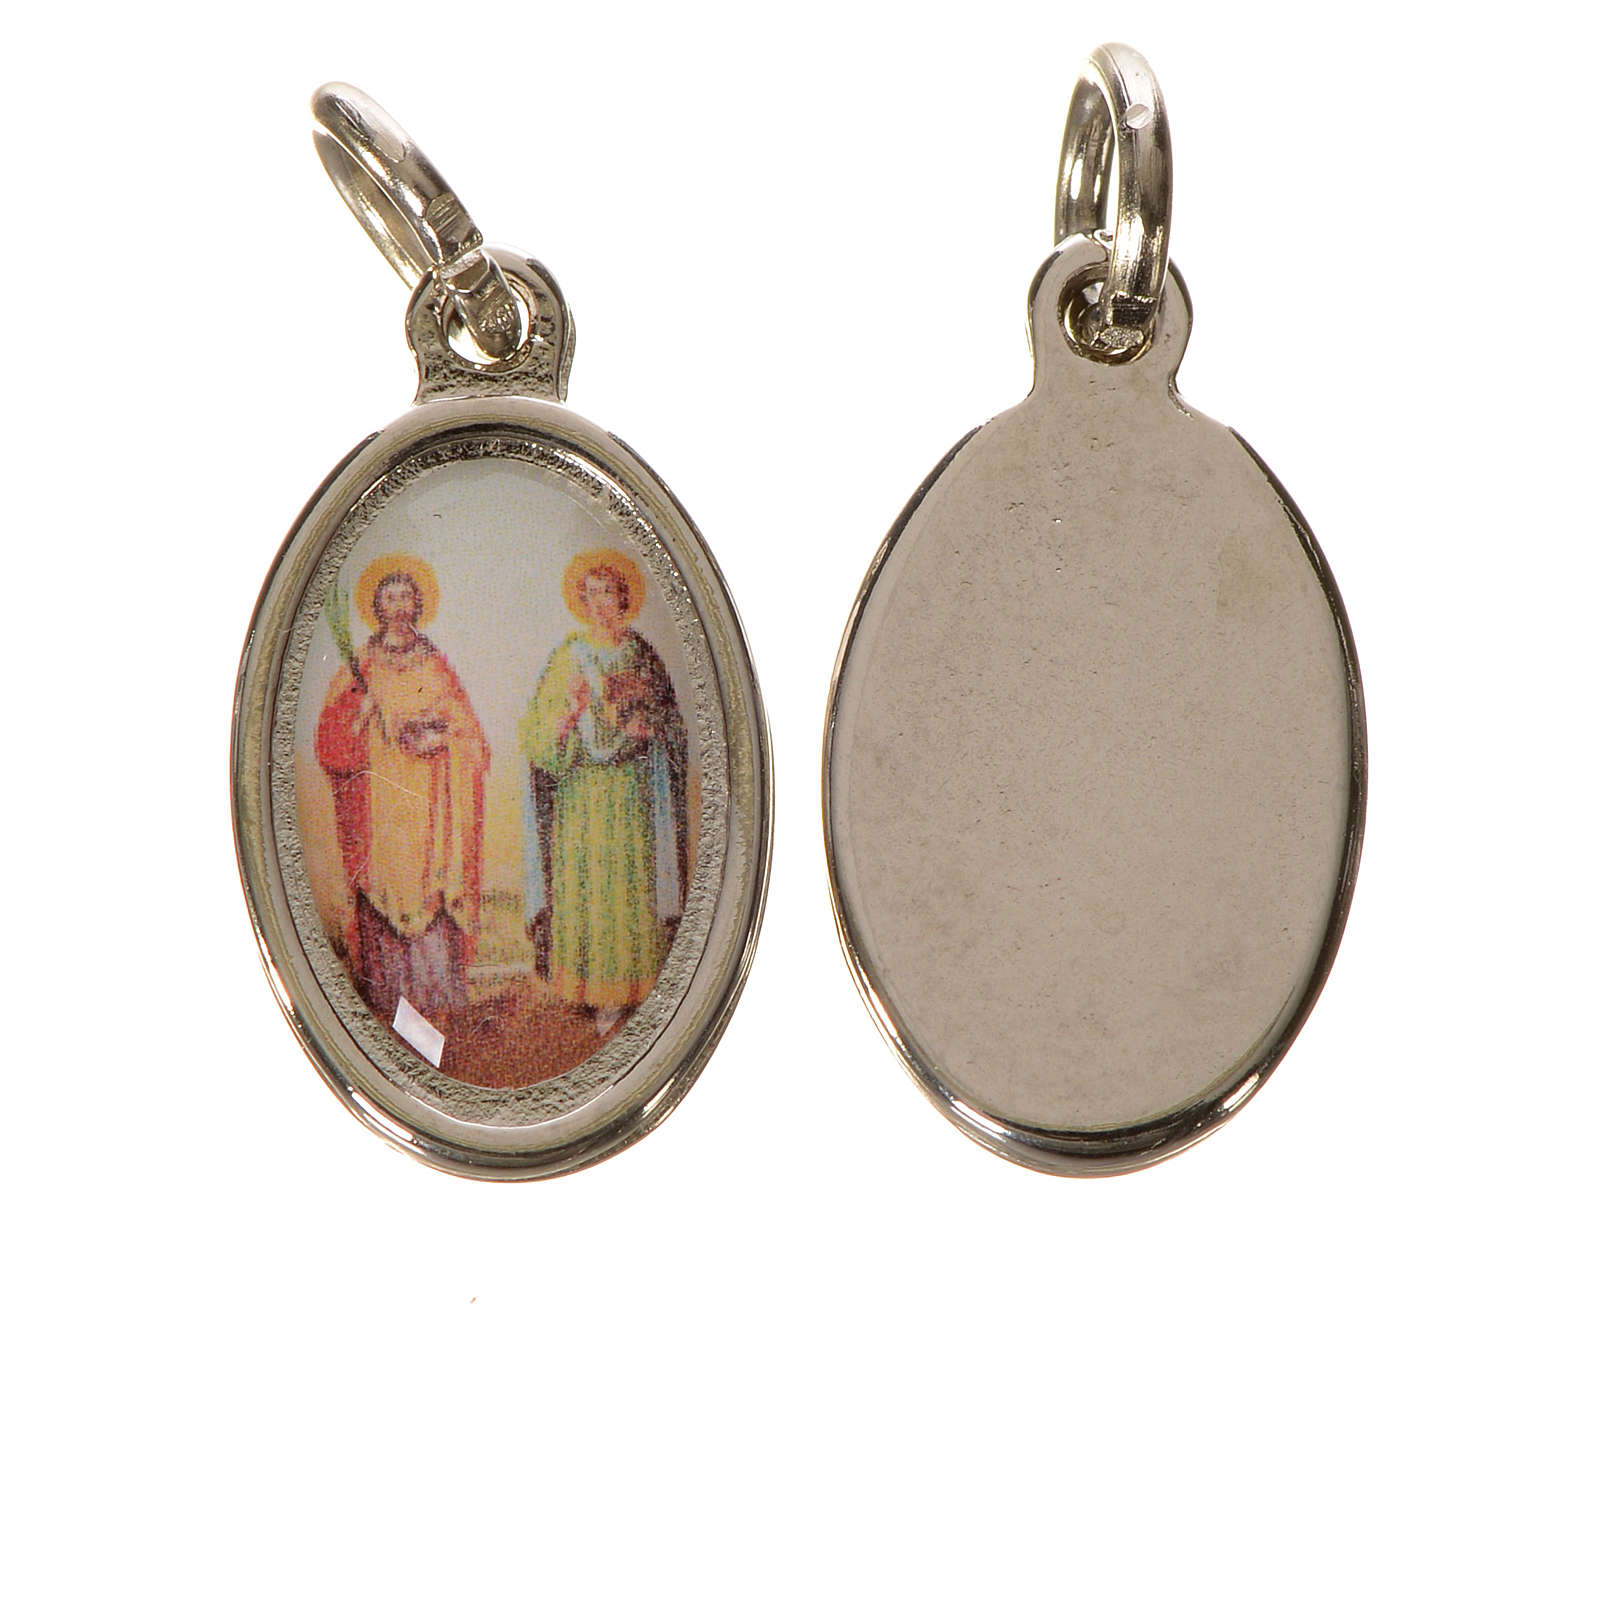 Saints Cosmas and Damian medal in silver metal, 1.5cm 4